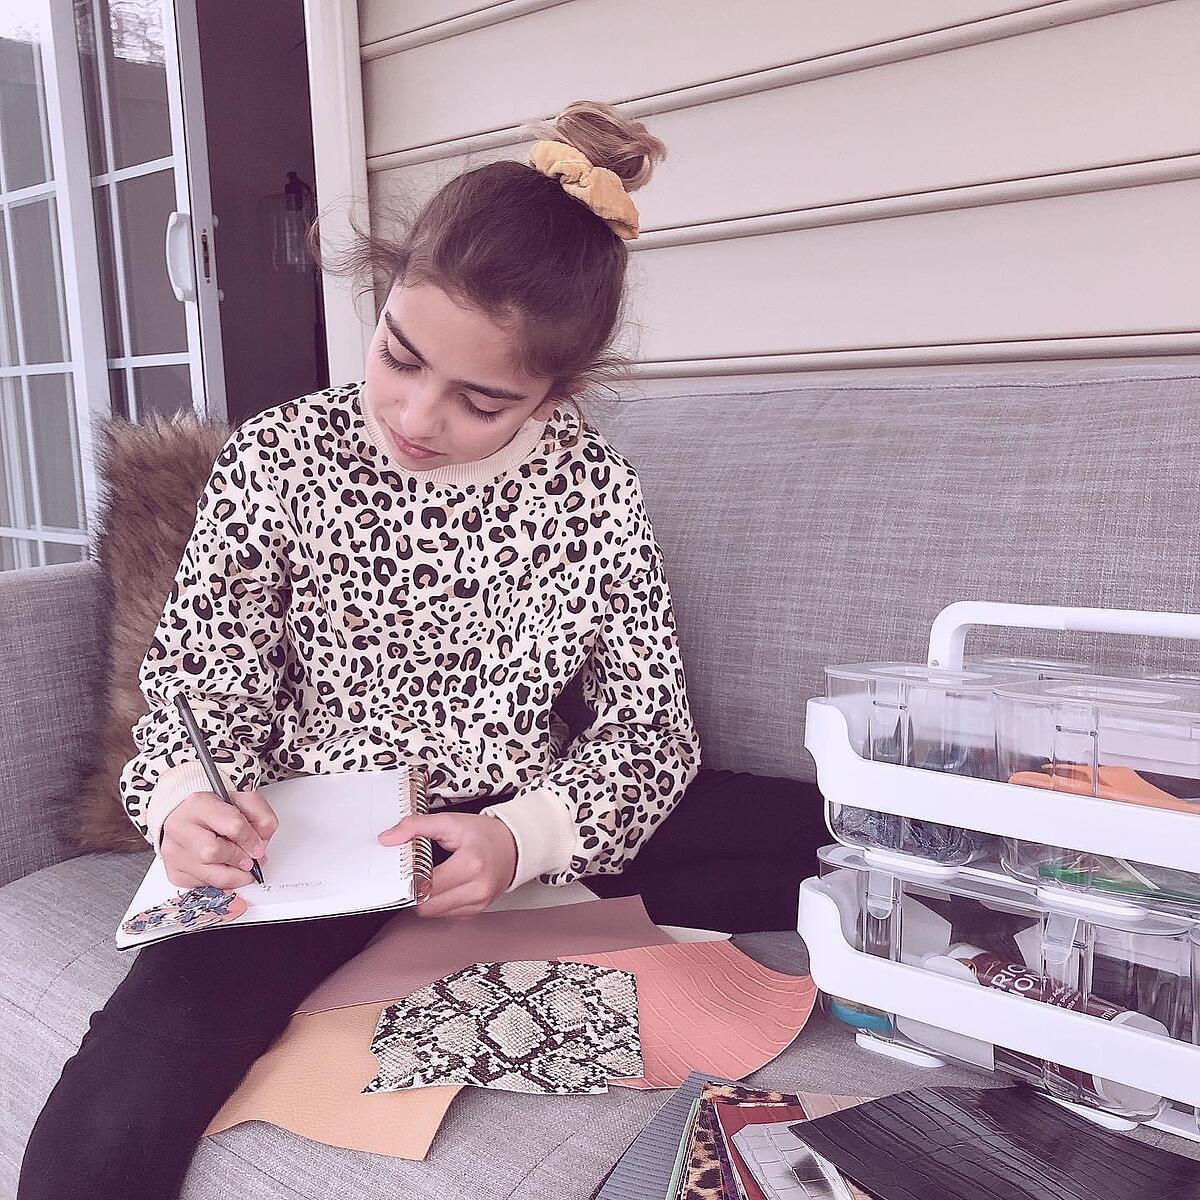 MakersValley | This Middle Schooler is Redefining Modern Fashion One Design at a Time